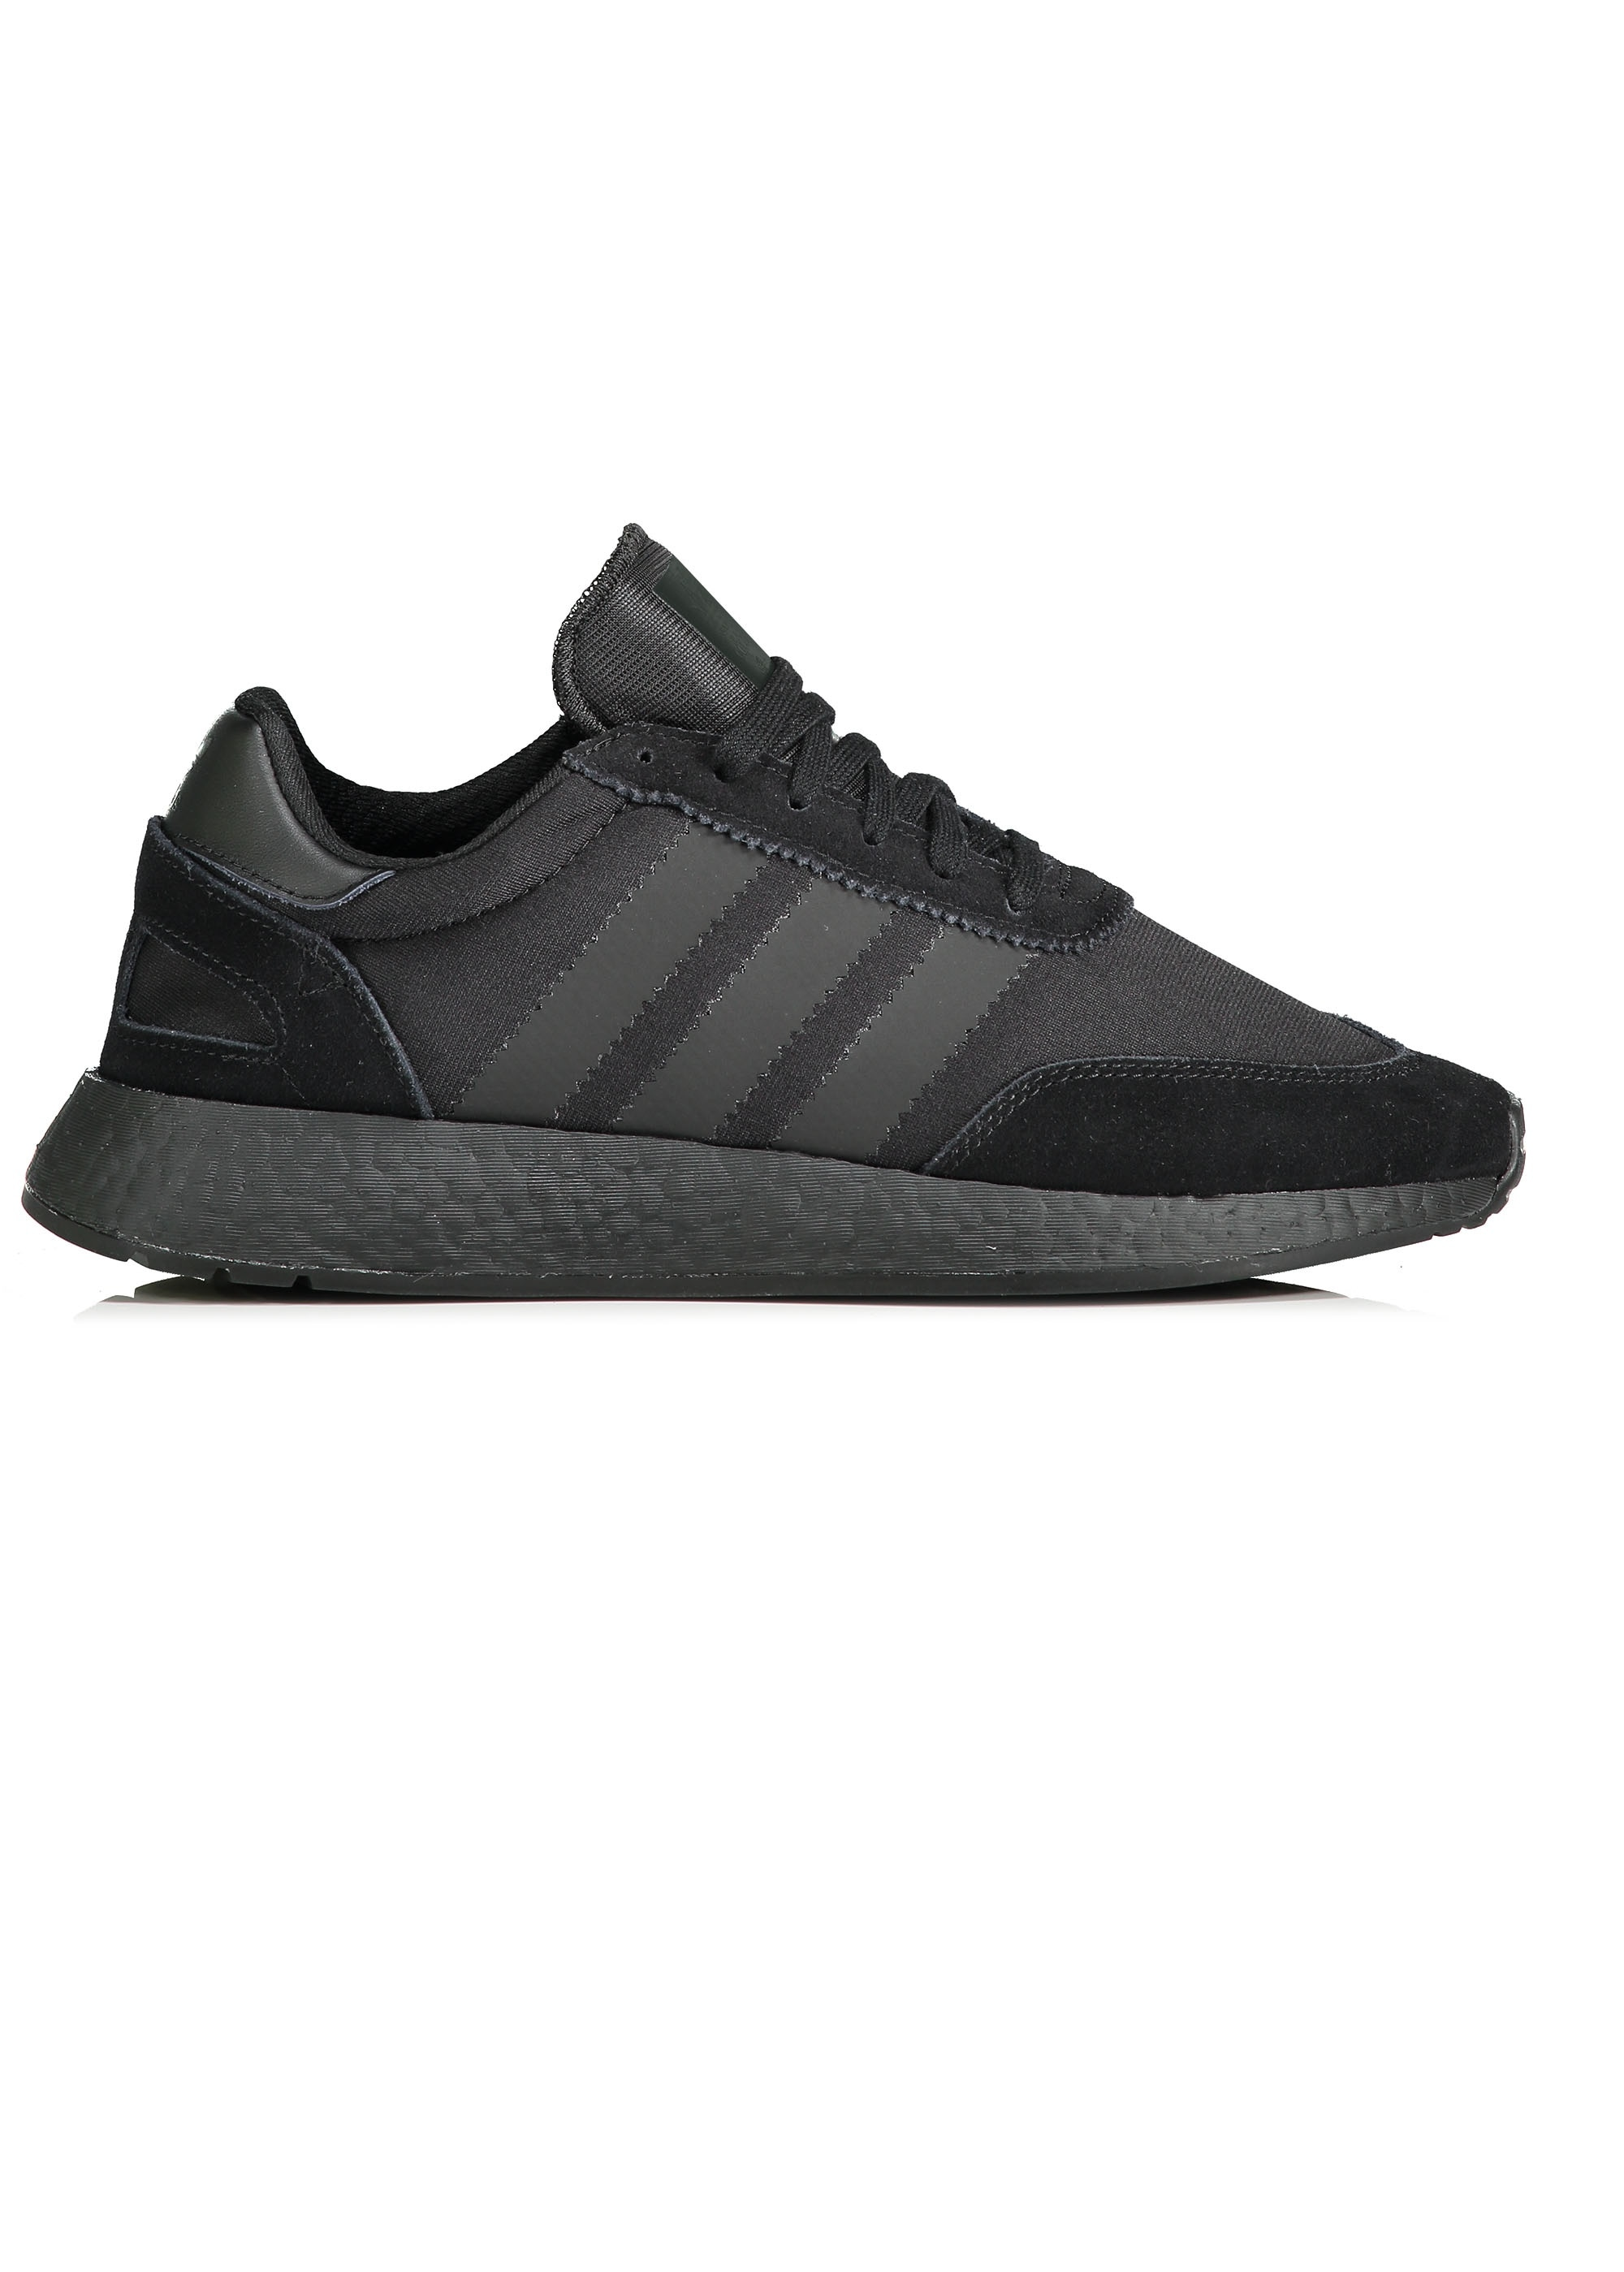 adidas originals i 5923 black